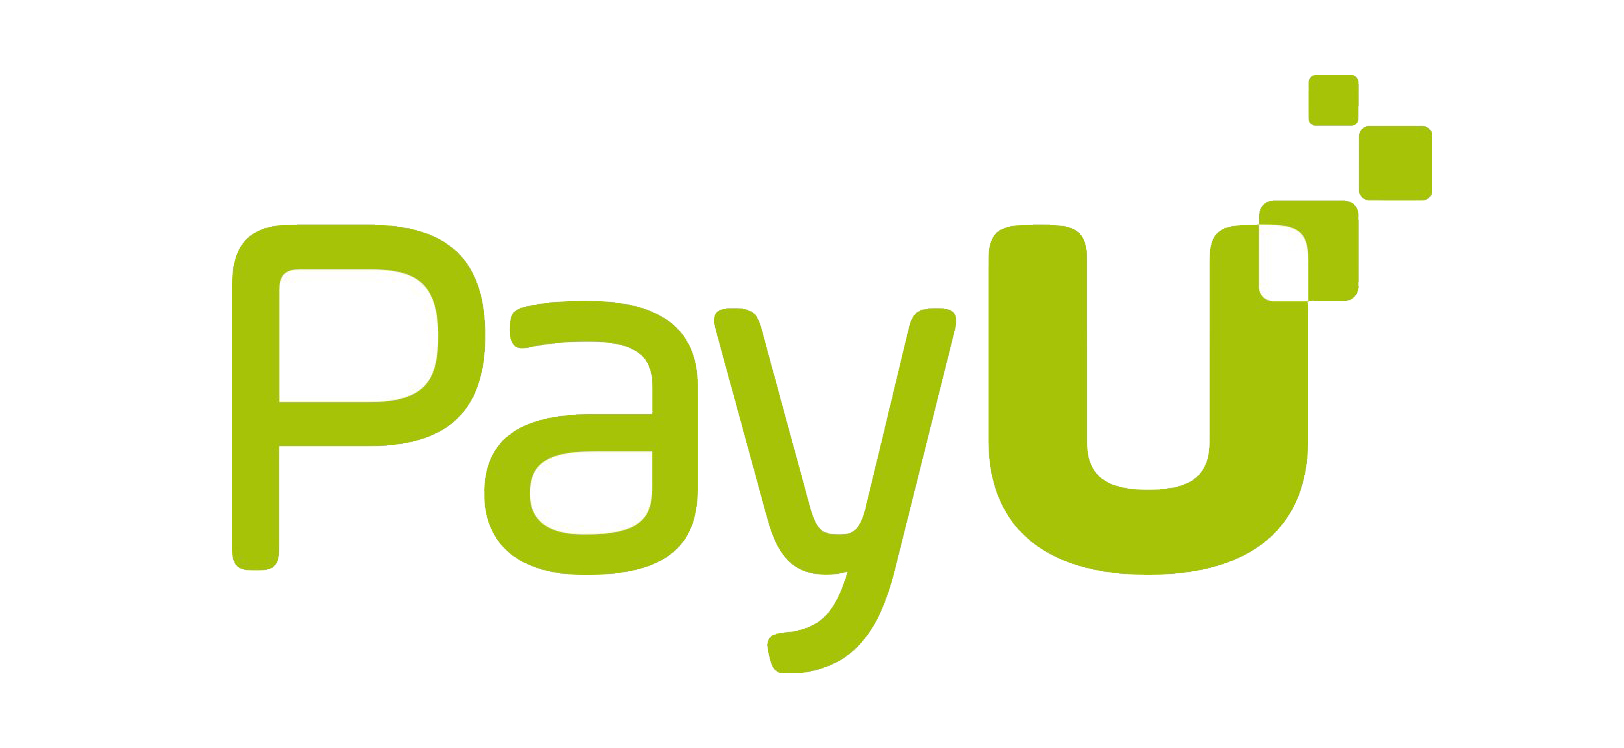 PayU Extends Offering to Wix Users to Serve E-commerce Demand from SMBs in Wake of COVID-19